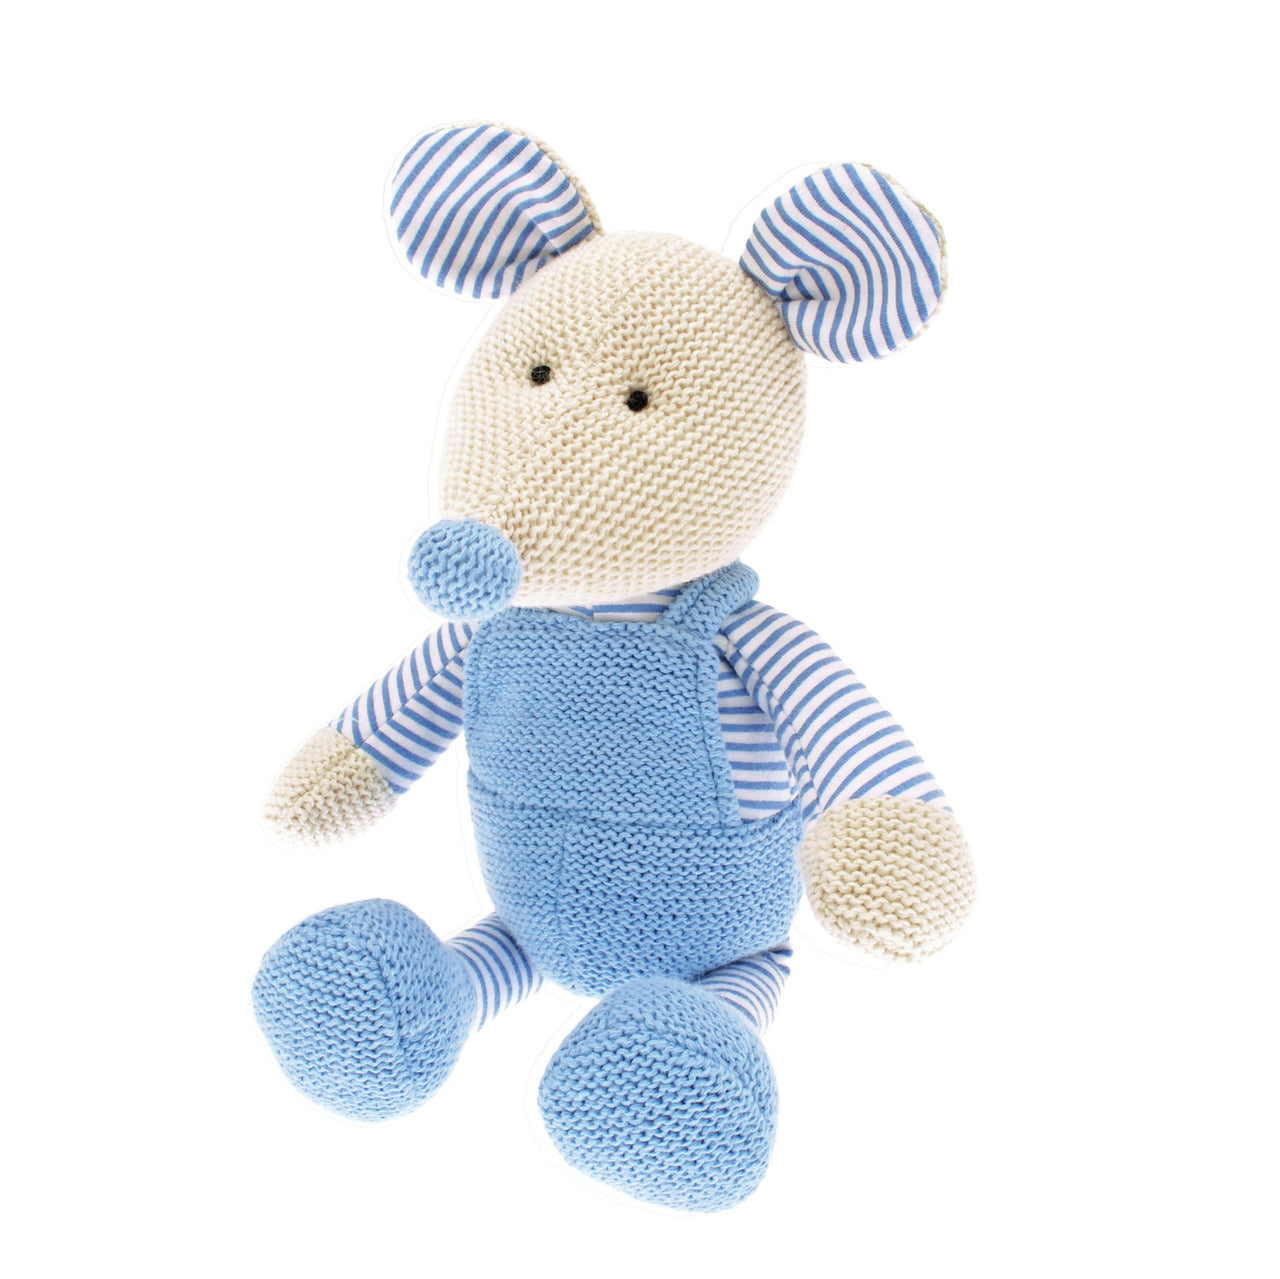 Mr Mouse Knitted Toy - Kids Room Decor | Toys Gifts | Childrens Interiors | Rooms for Rascals